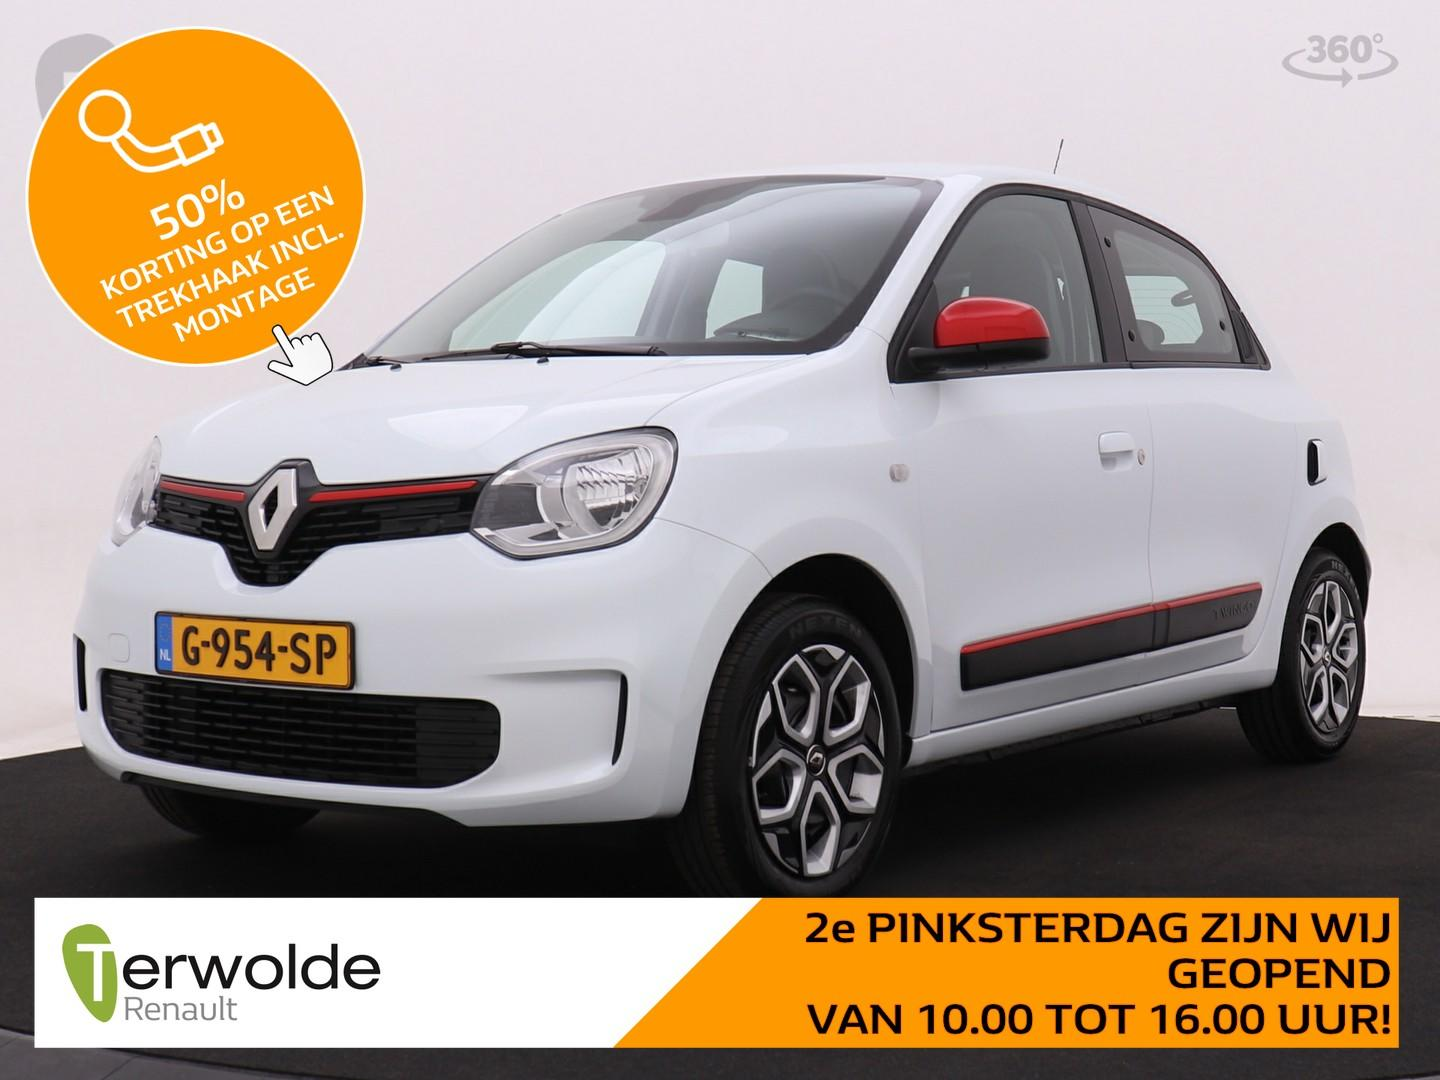 Renault Twingo 1.0 75pk sce collection